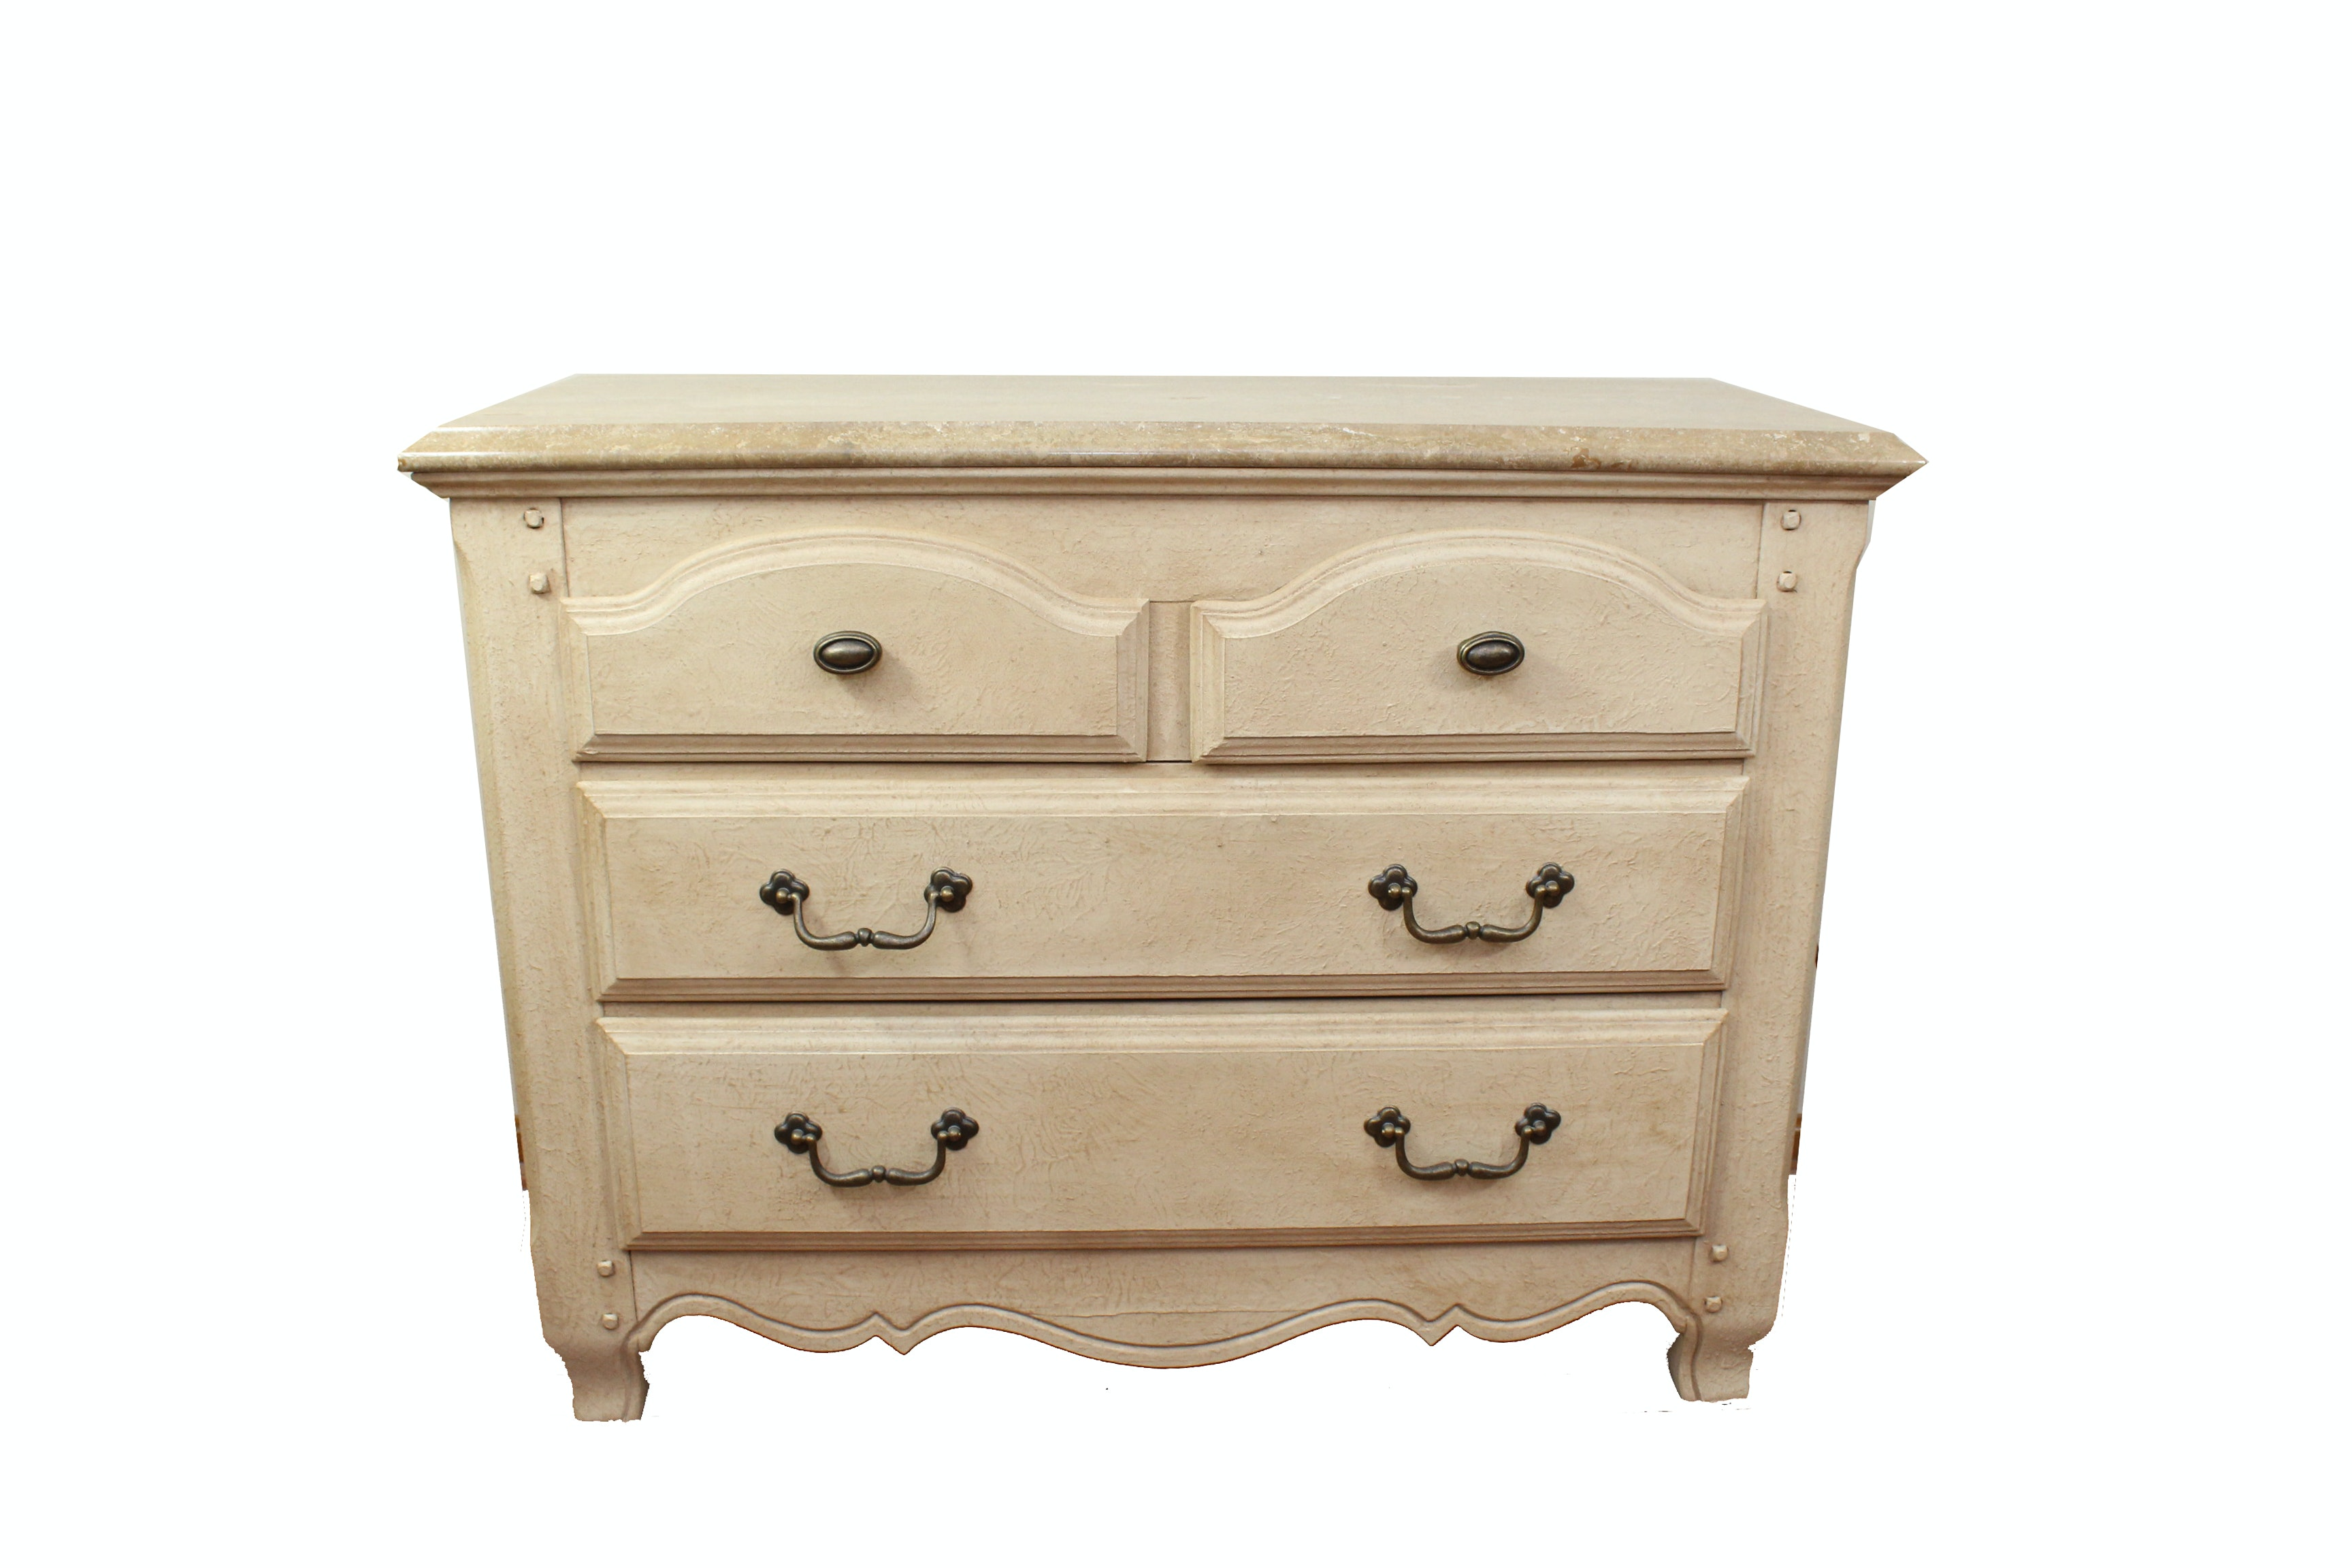 French Provincial-Style Dresser by Bernhardt Furniture